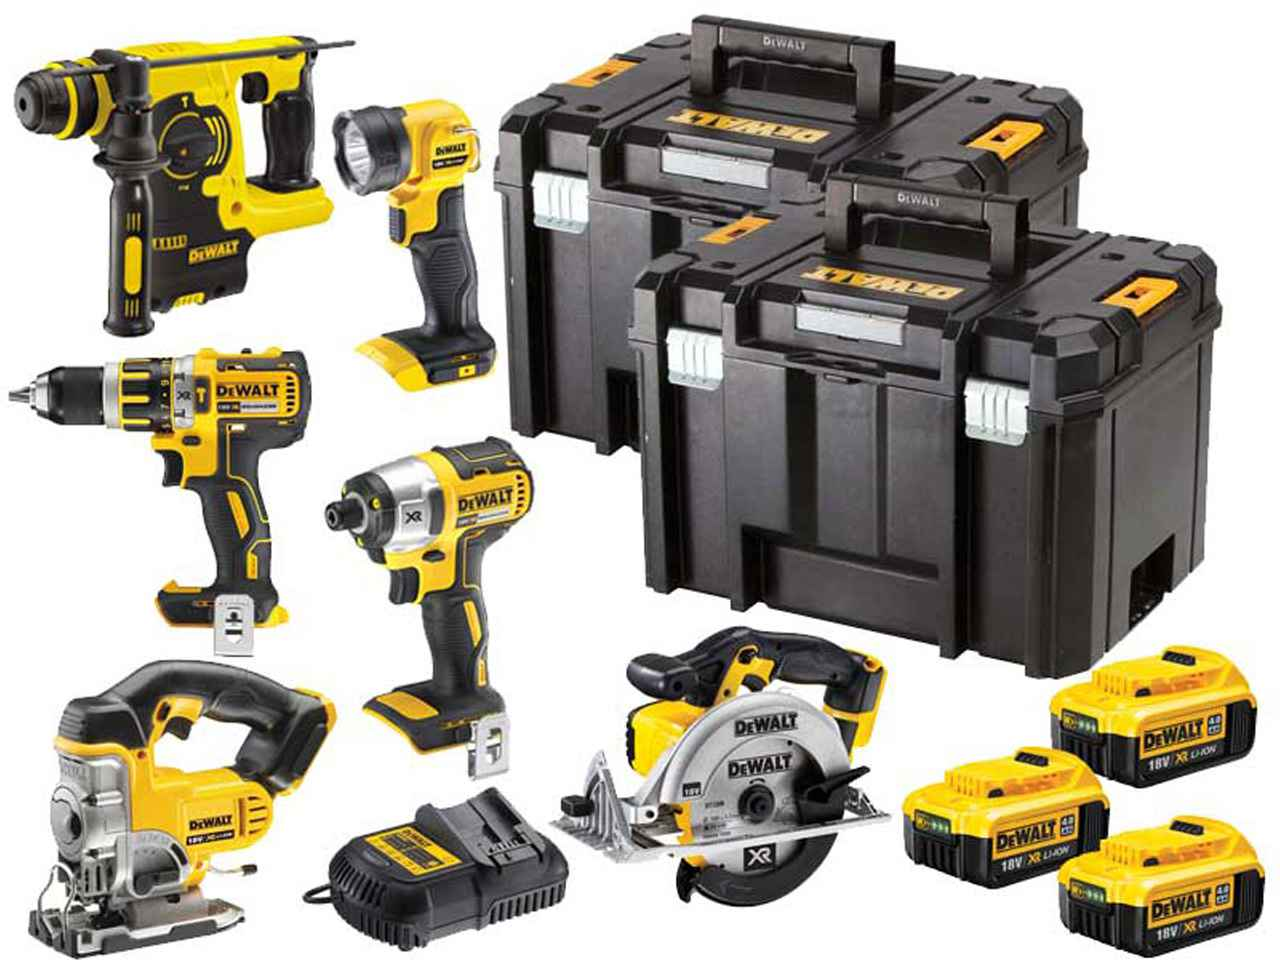 dewalt dck699m3t 18v xr cordless li ion 6 piece power tool. Black Bedroom Furniture Sets. Home Design Ideas